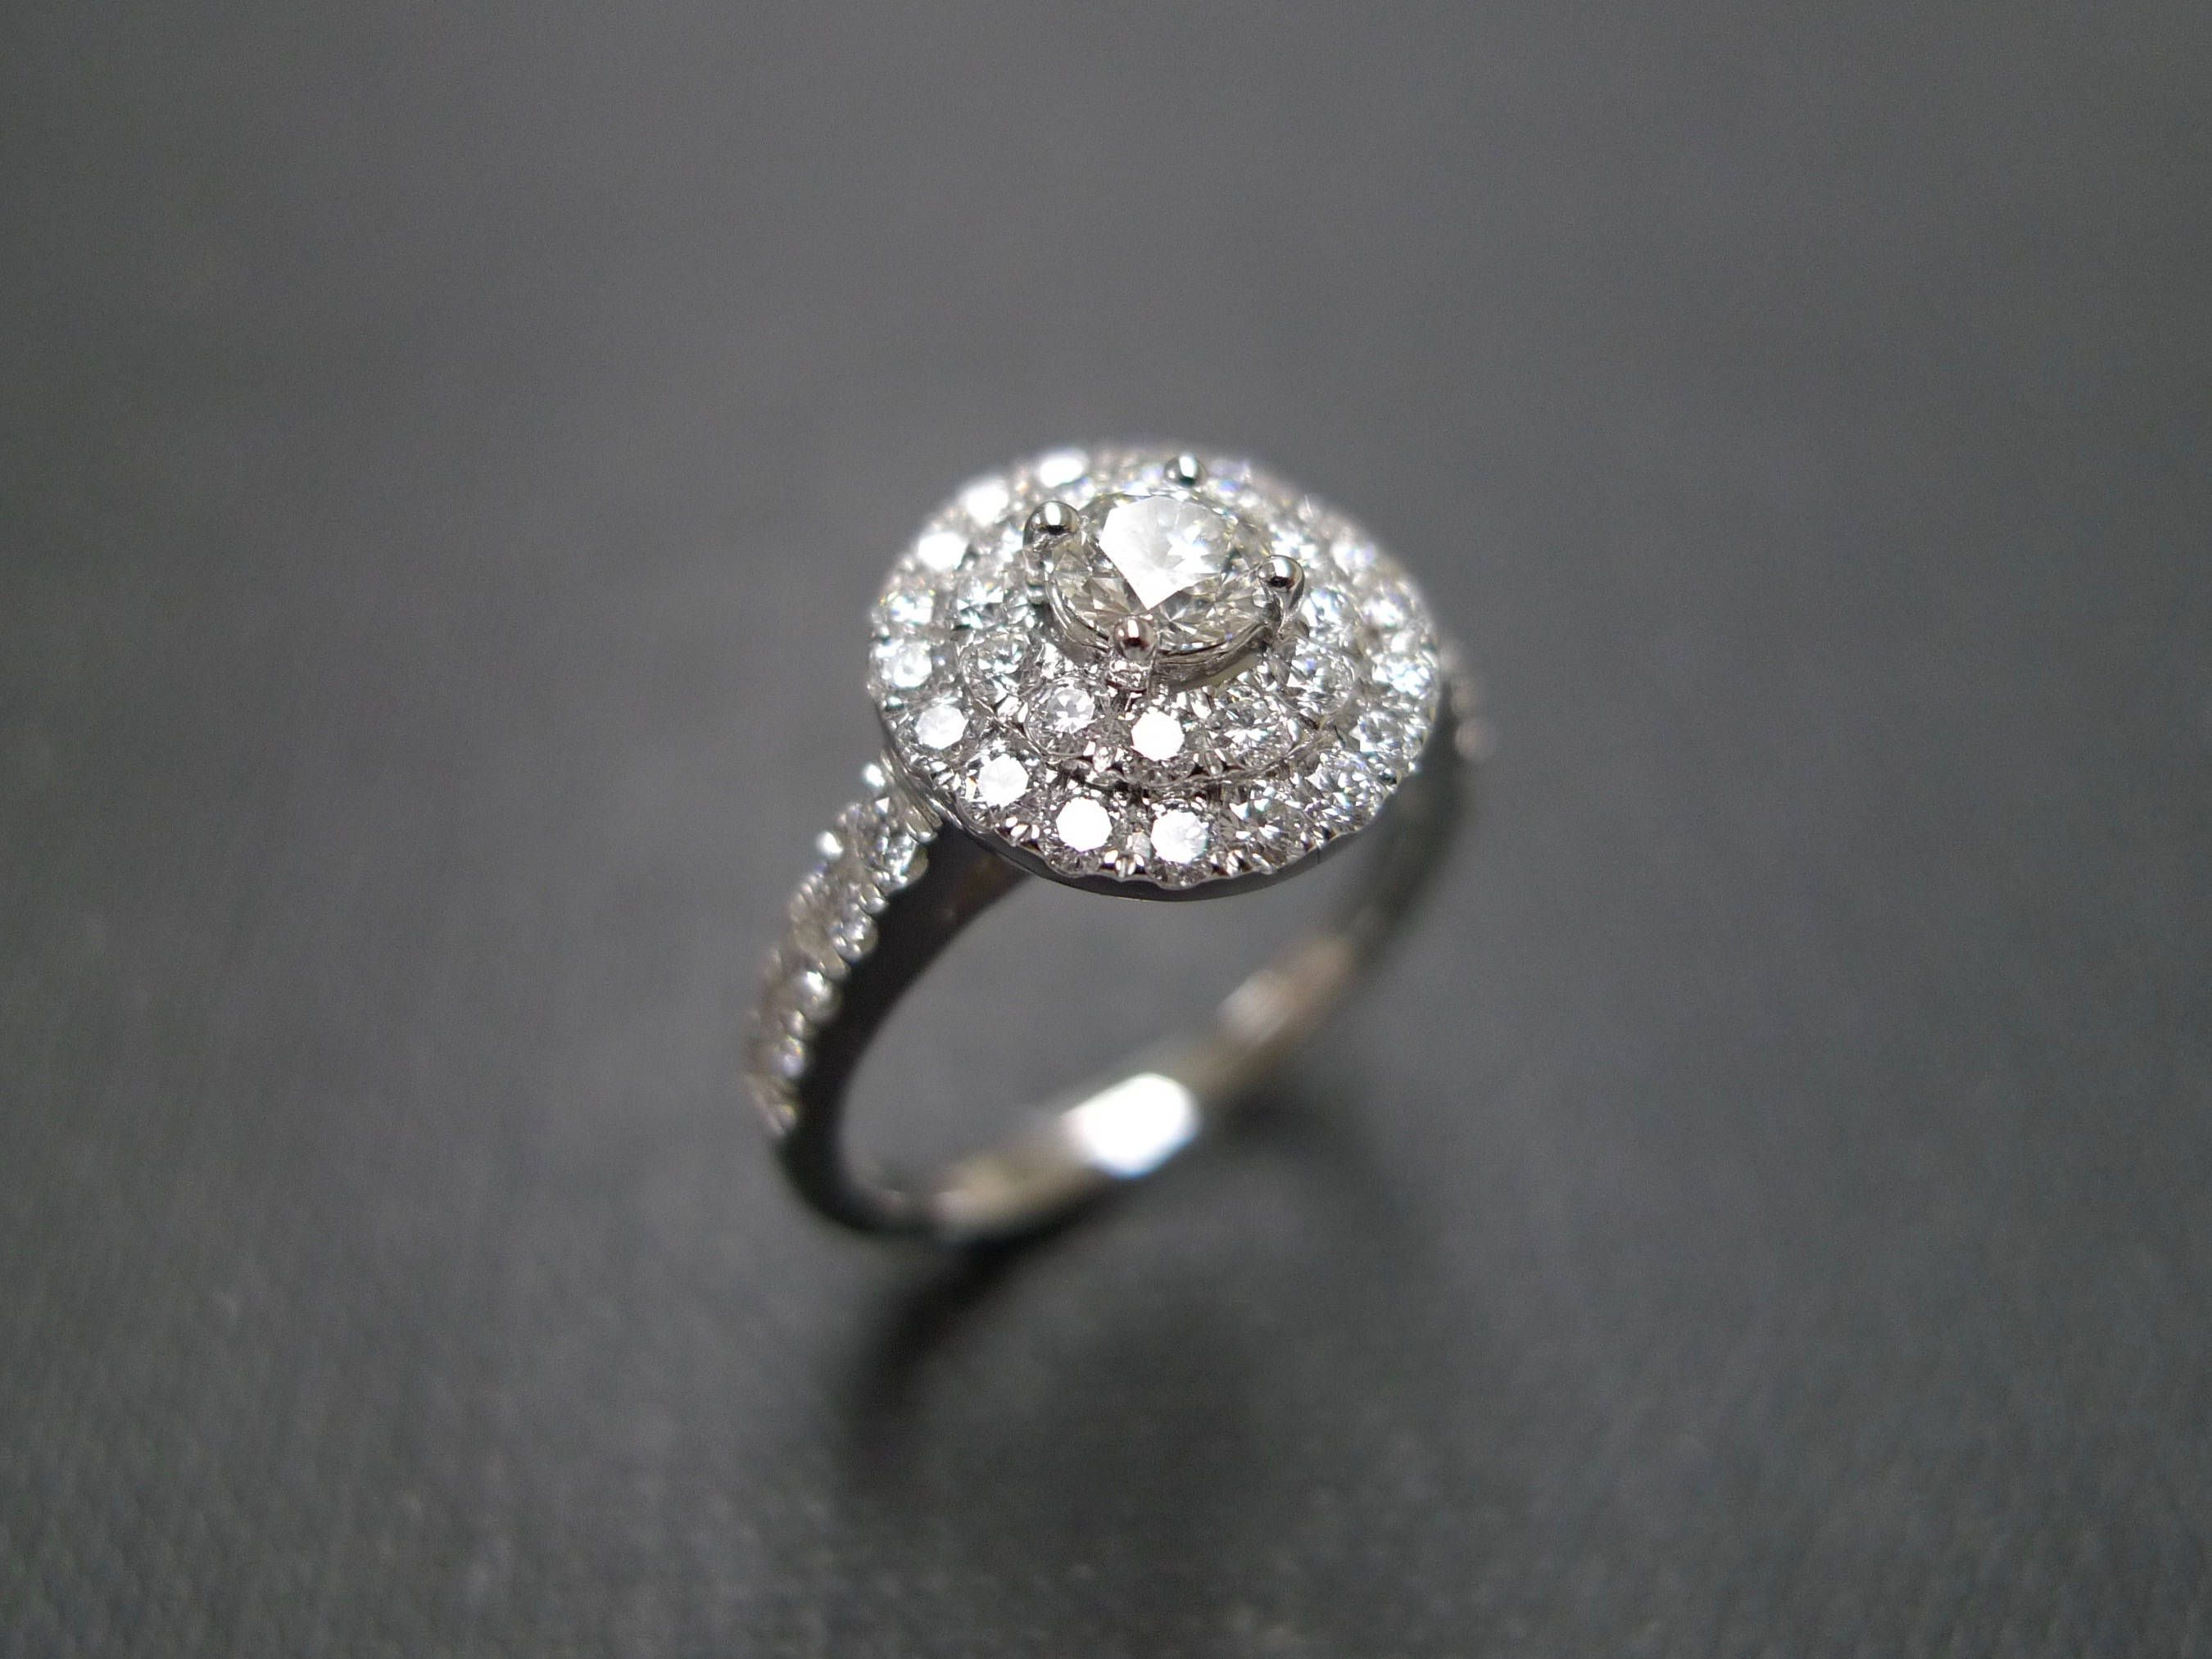 p rings stone asp marquise single ring cut diamond